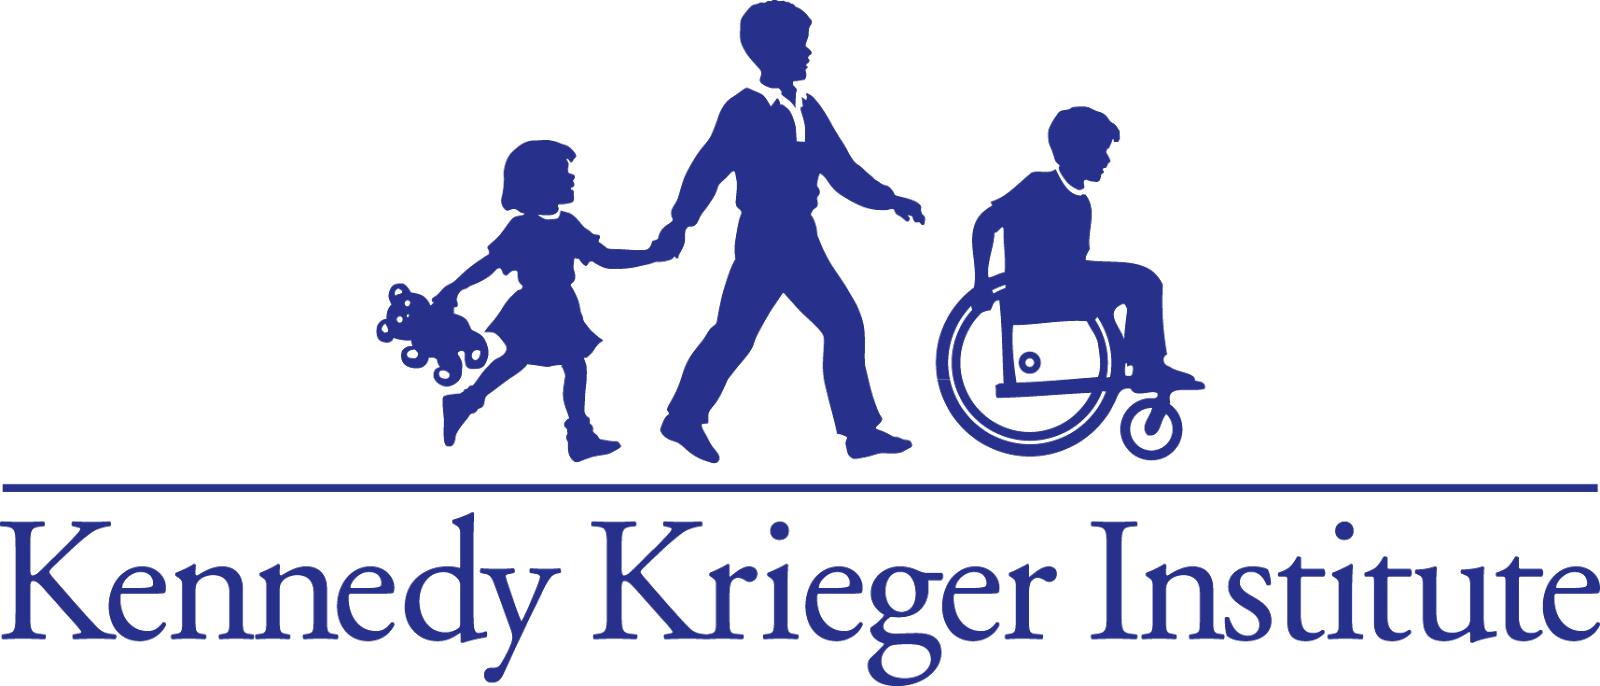 Hugo W. Moser Research Institute at Kennedy Krieger